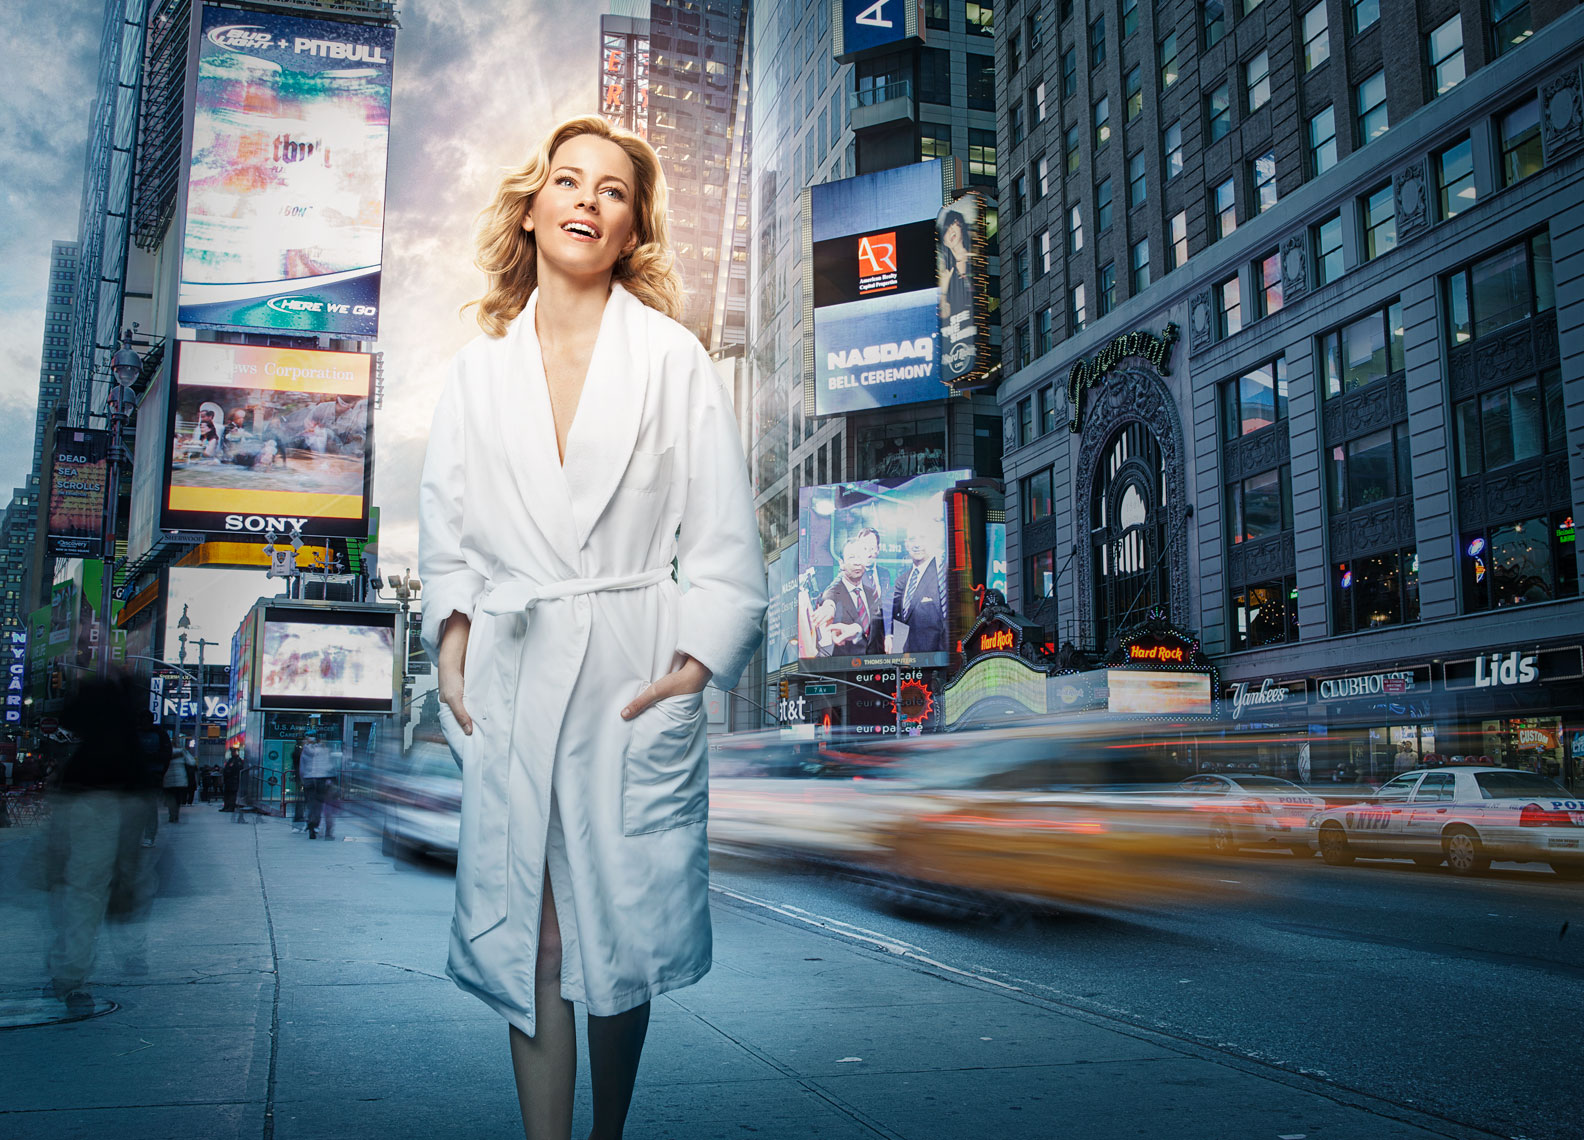 Best NYC spas featuring Elizabeth Banks